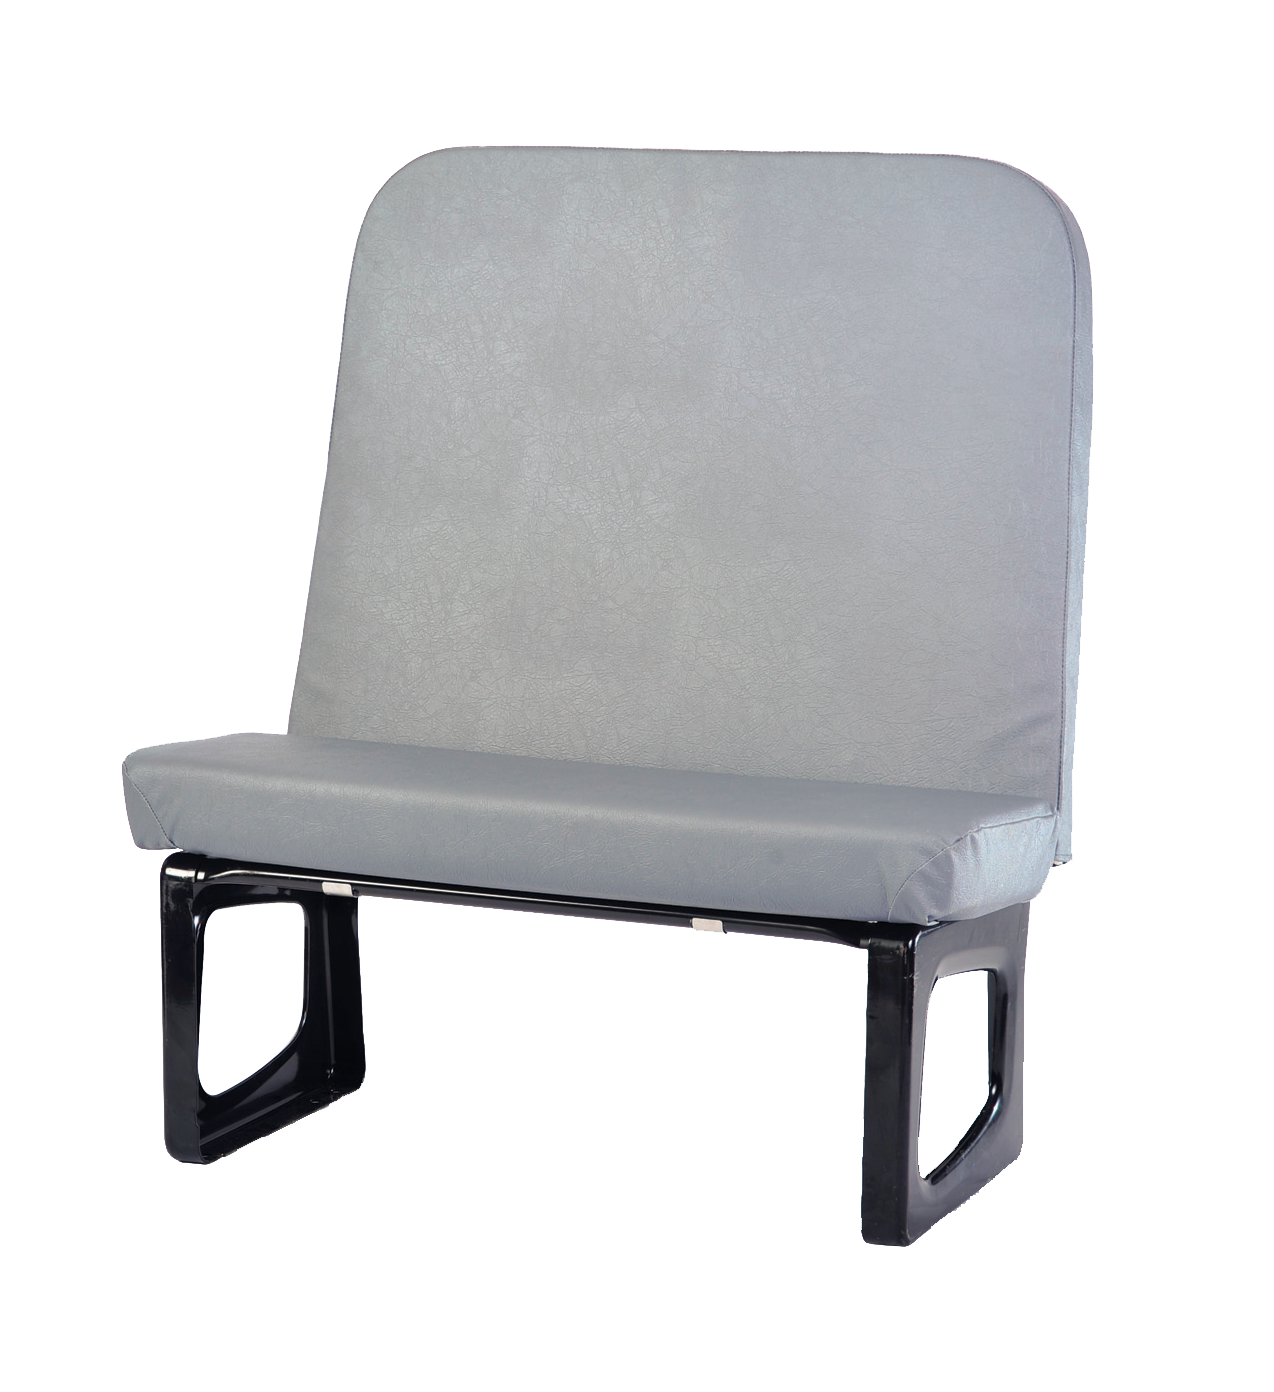 School chair clipart black and white banner stock Chair base clipart - Clipground banner stock